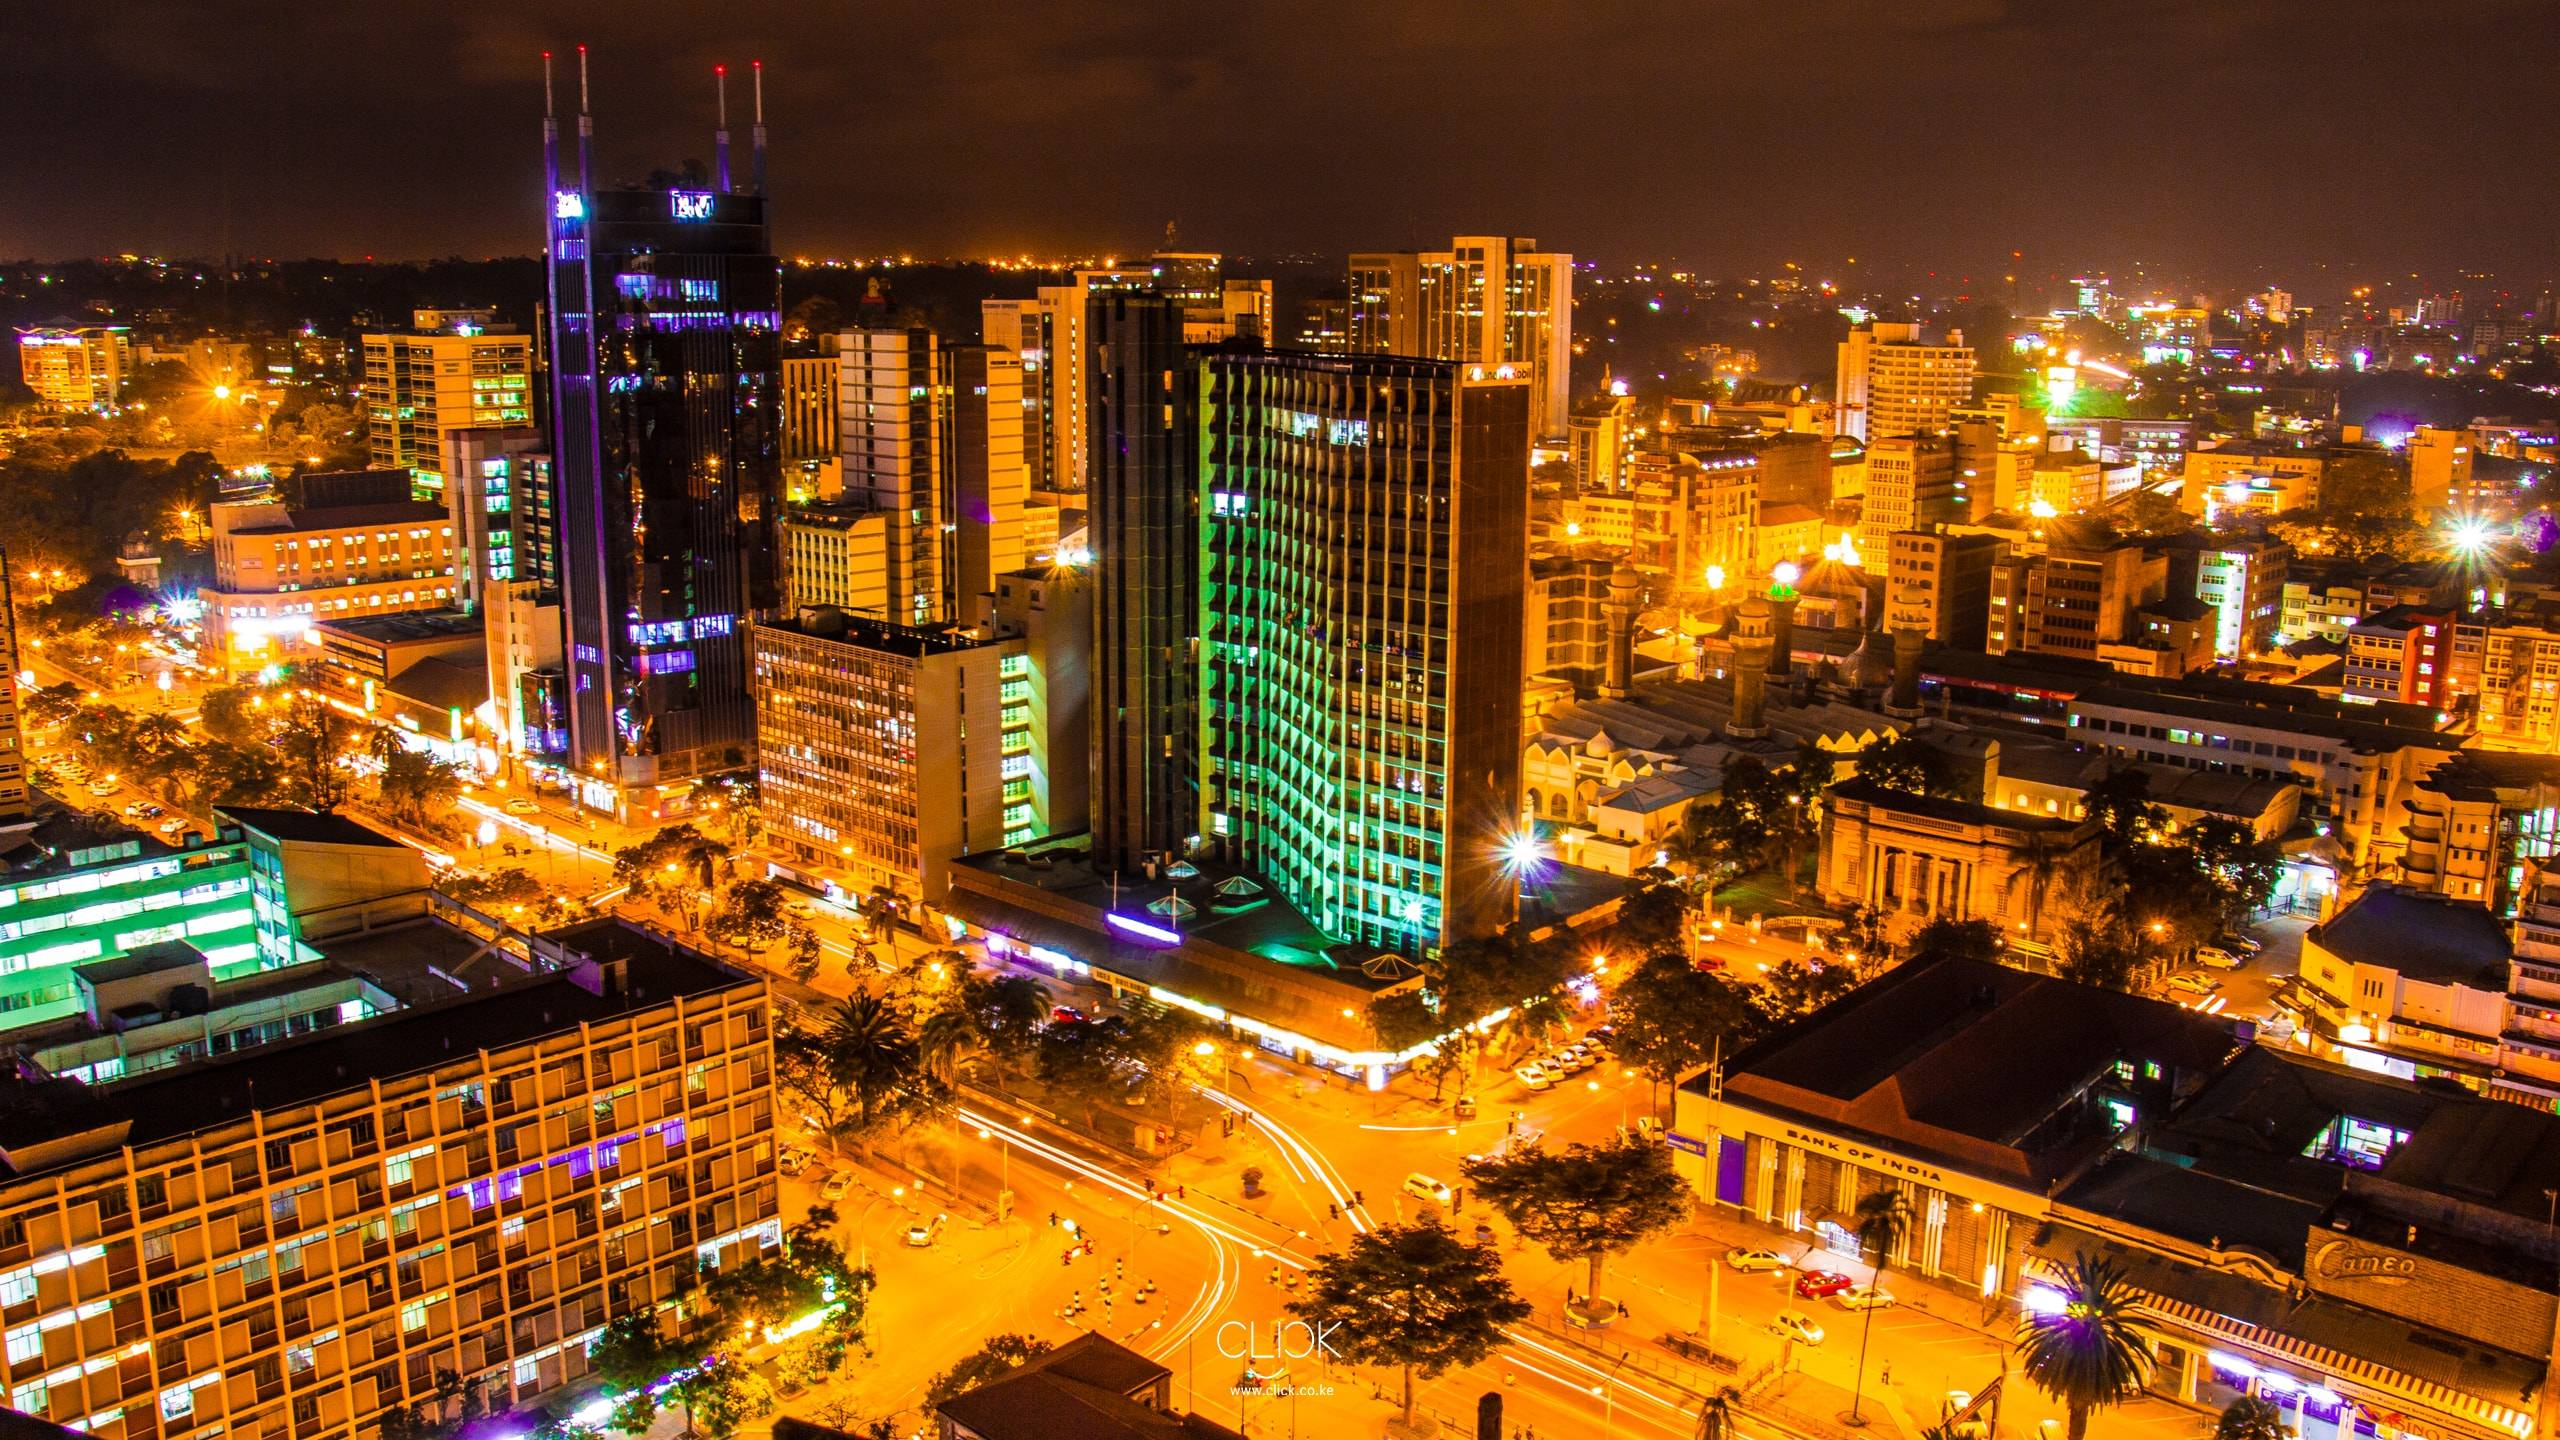 Nairobi City - Kenya HD Wallpapers and Photos | vivowallpapar.com